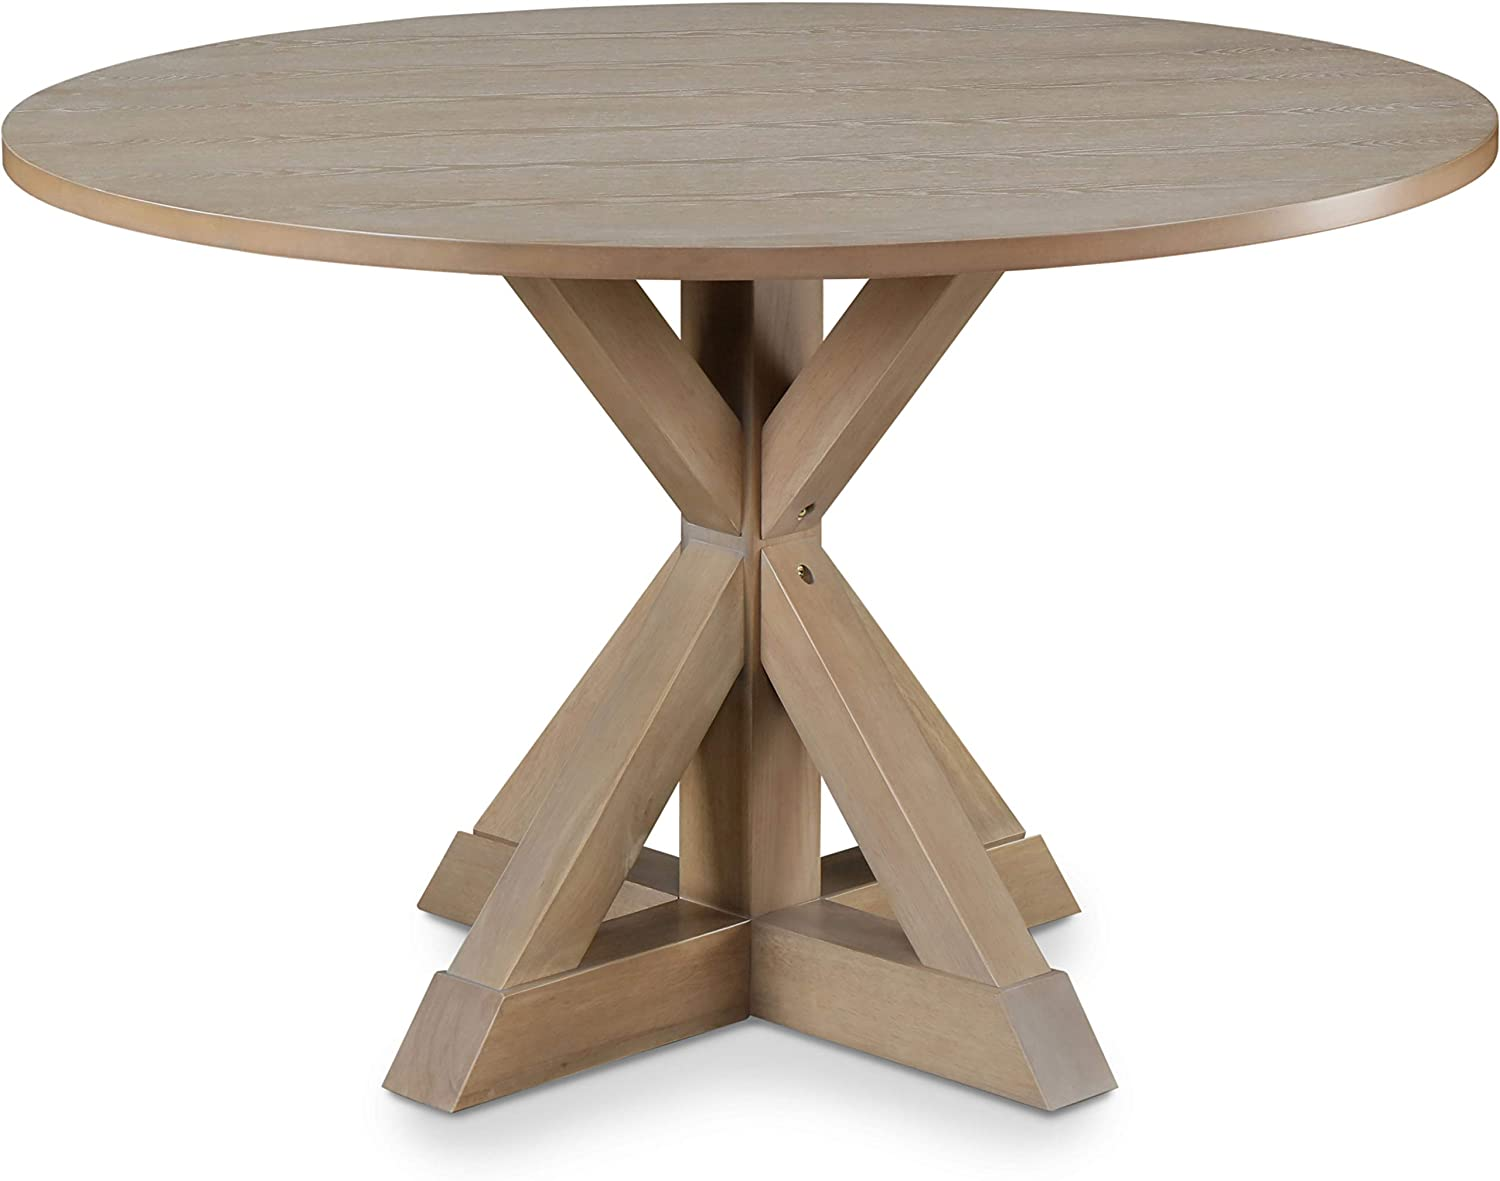 Finch Alfred Dining Table, beige